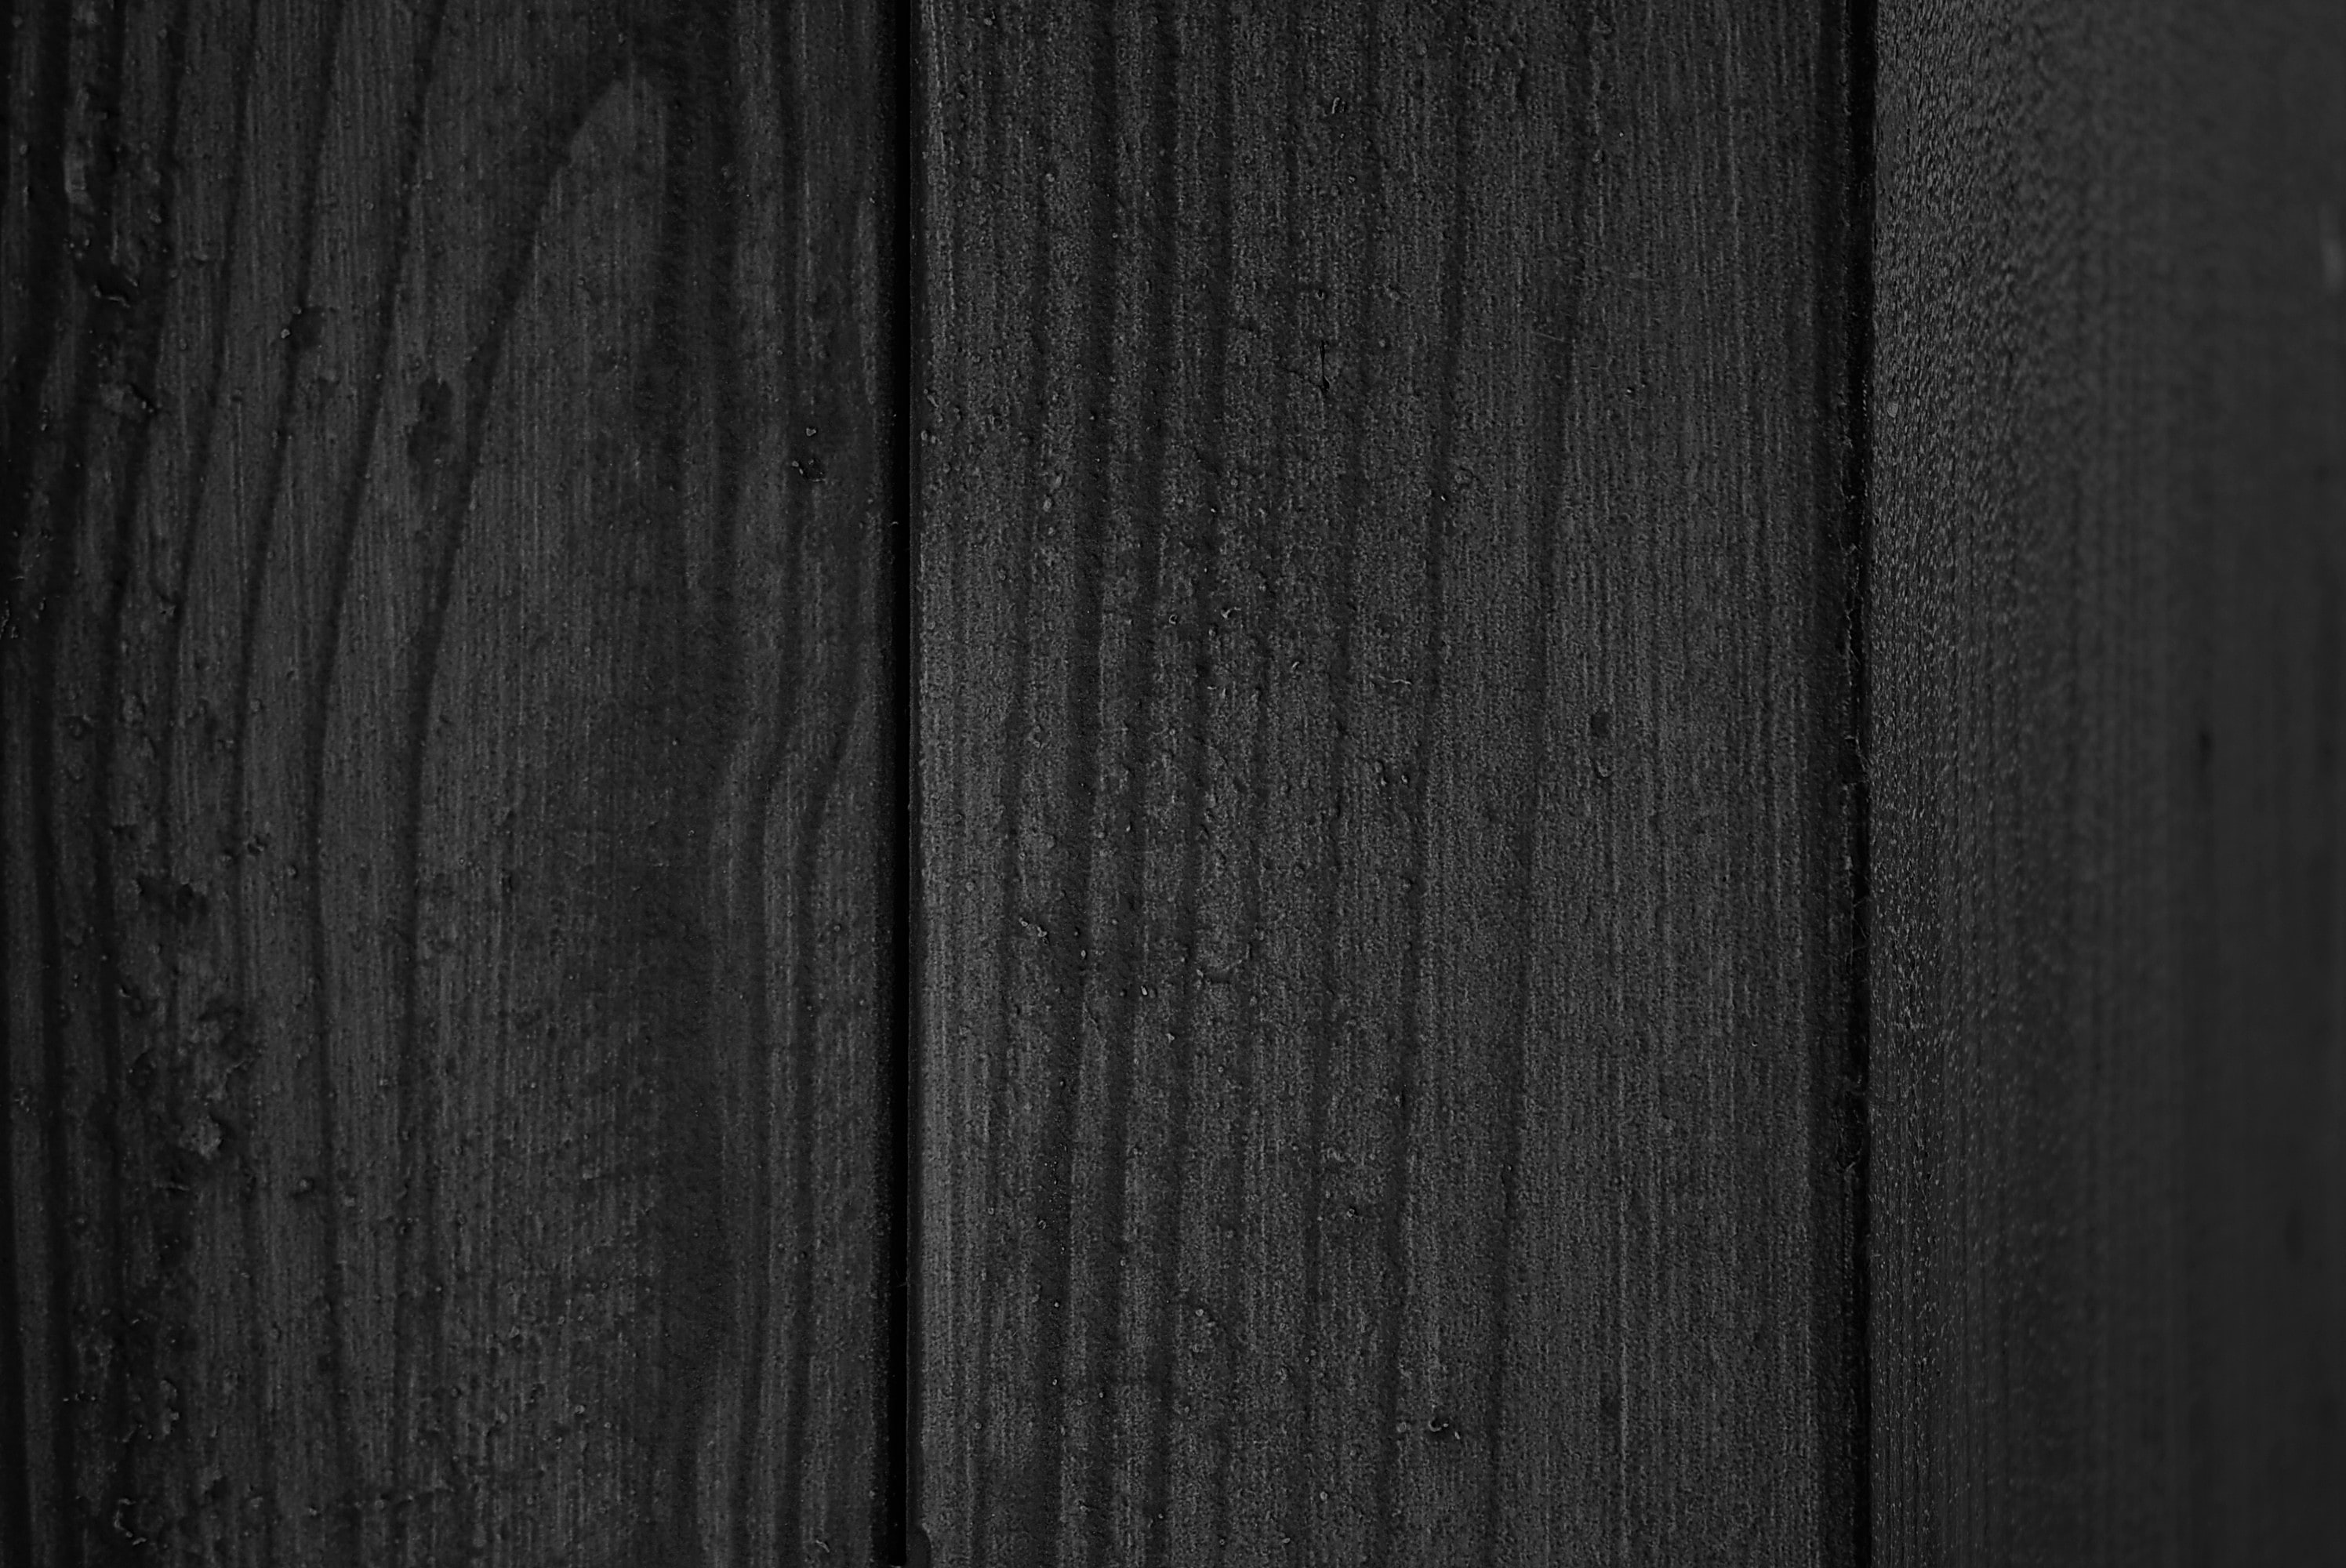 close up photo of wood plank